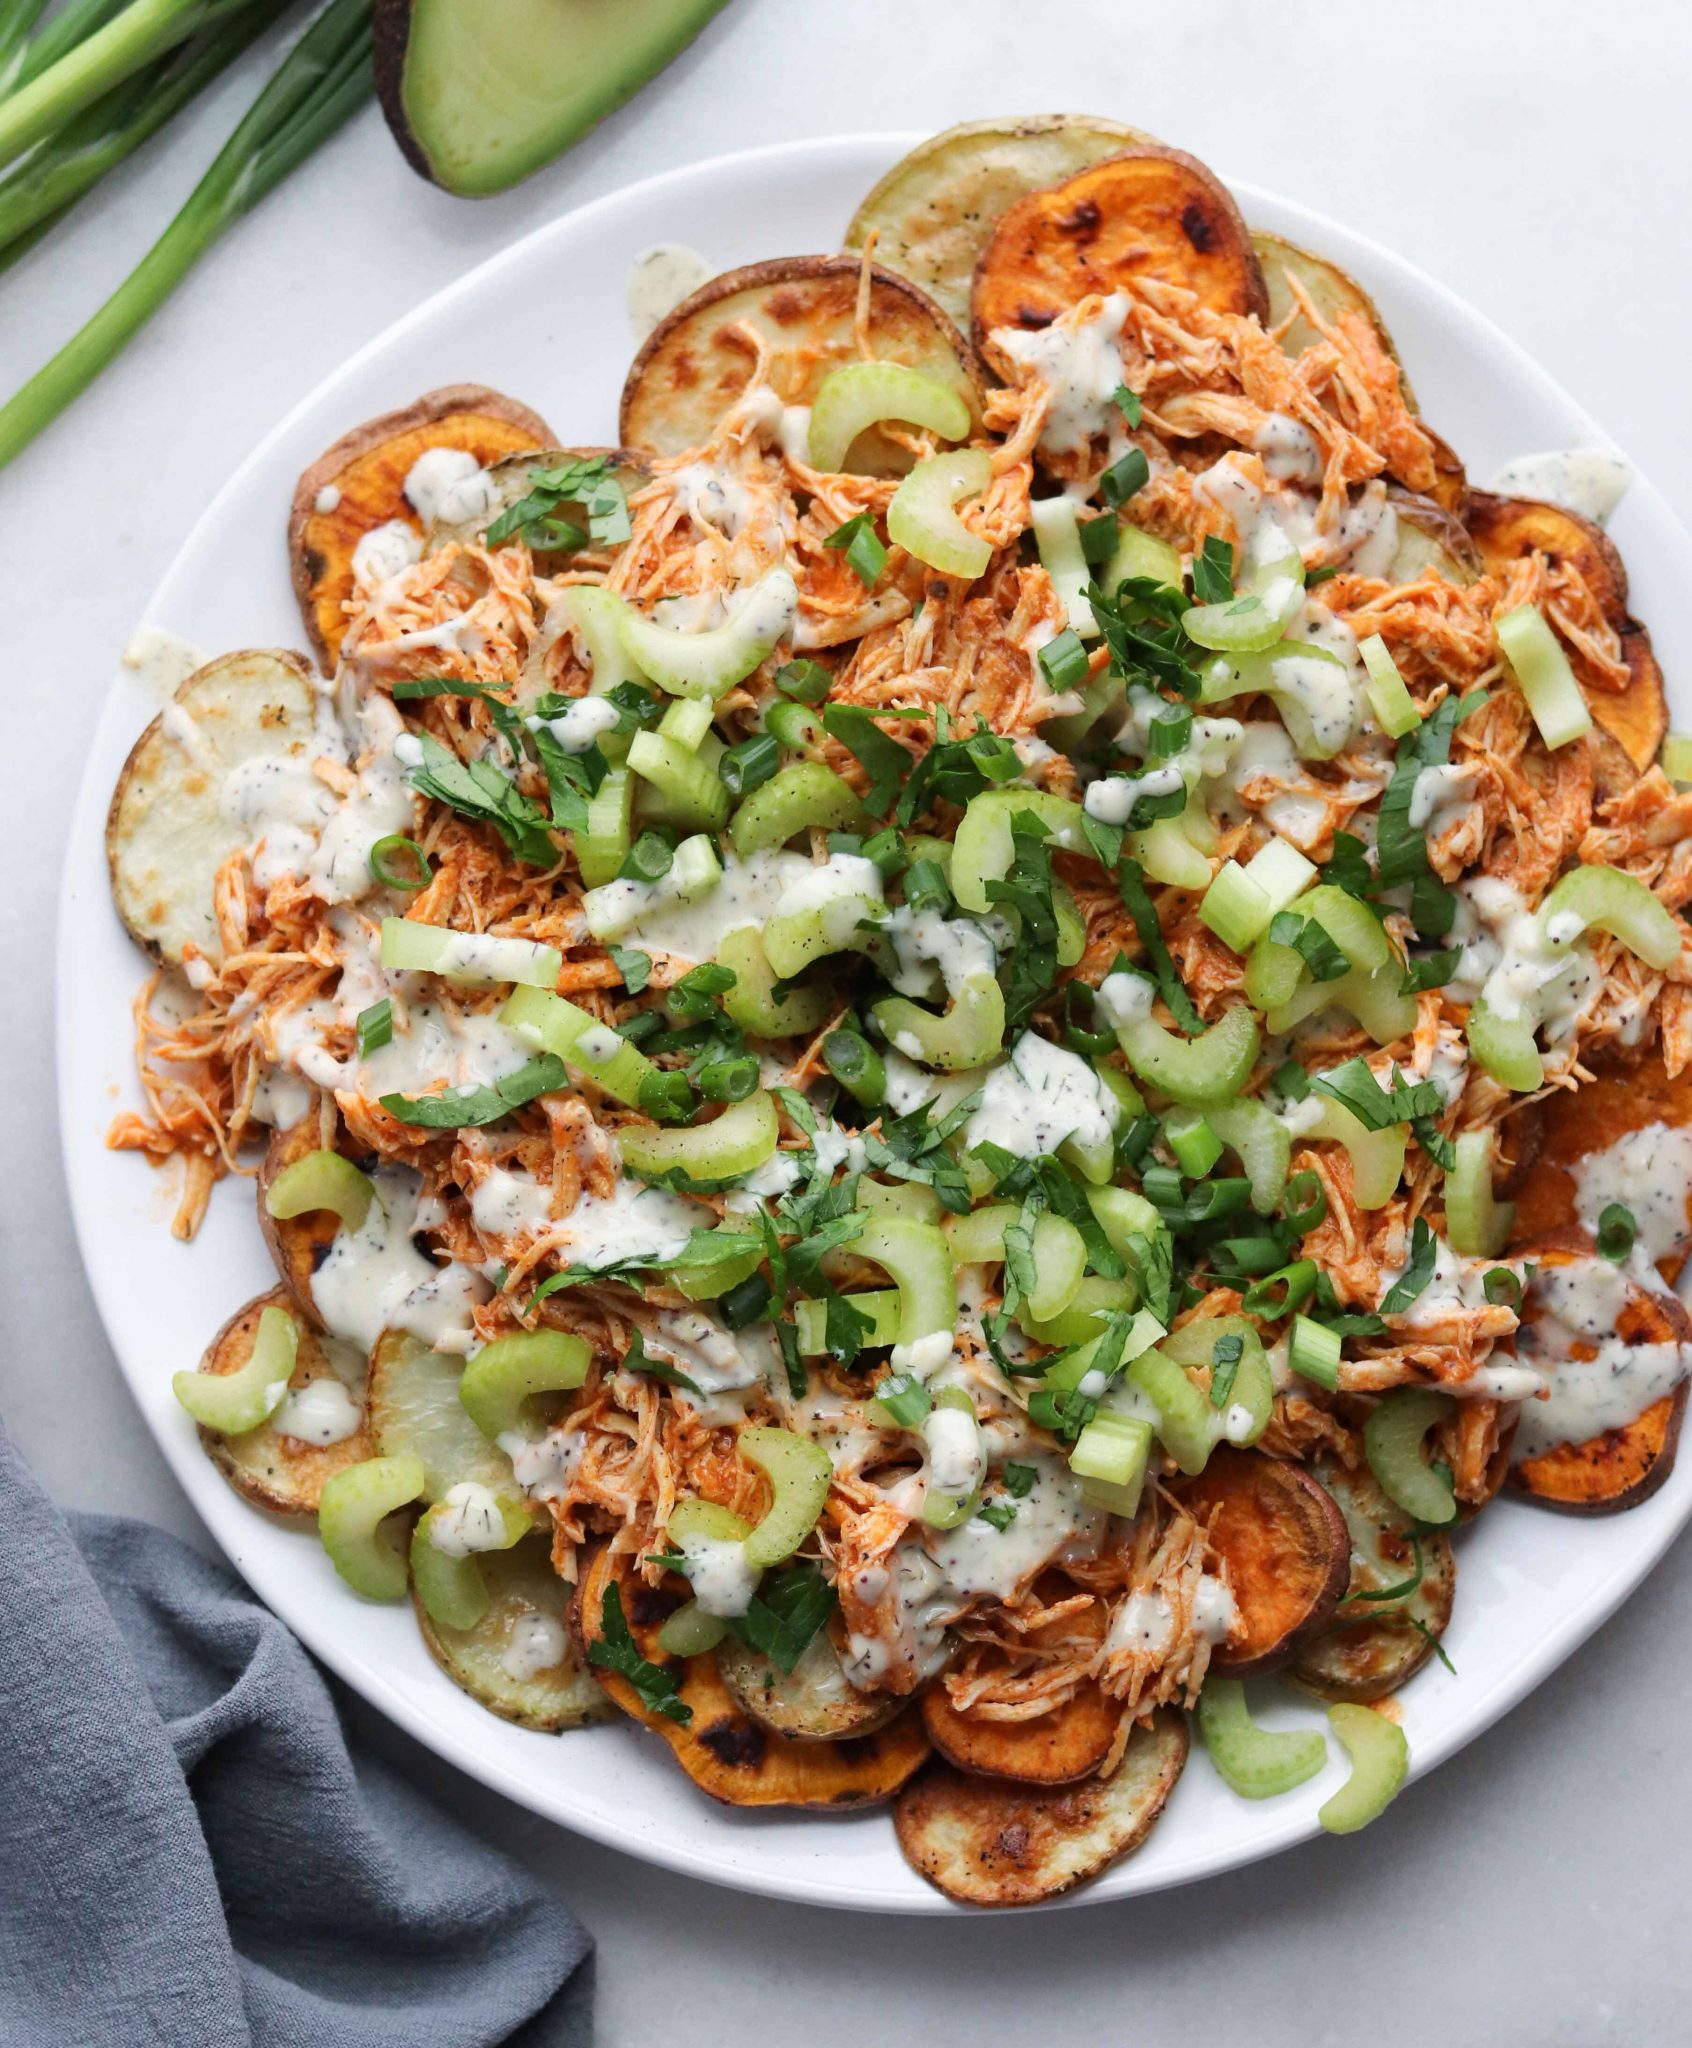 Paleo Buffalo Chicken is made in the Instant Pot and served over roasted potato rounds, then topped with celery, herbs, and ranch.